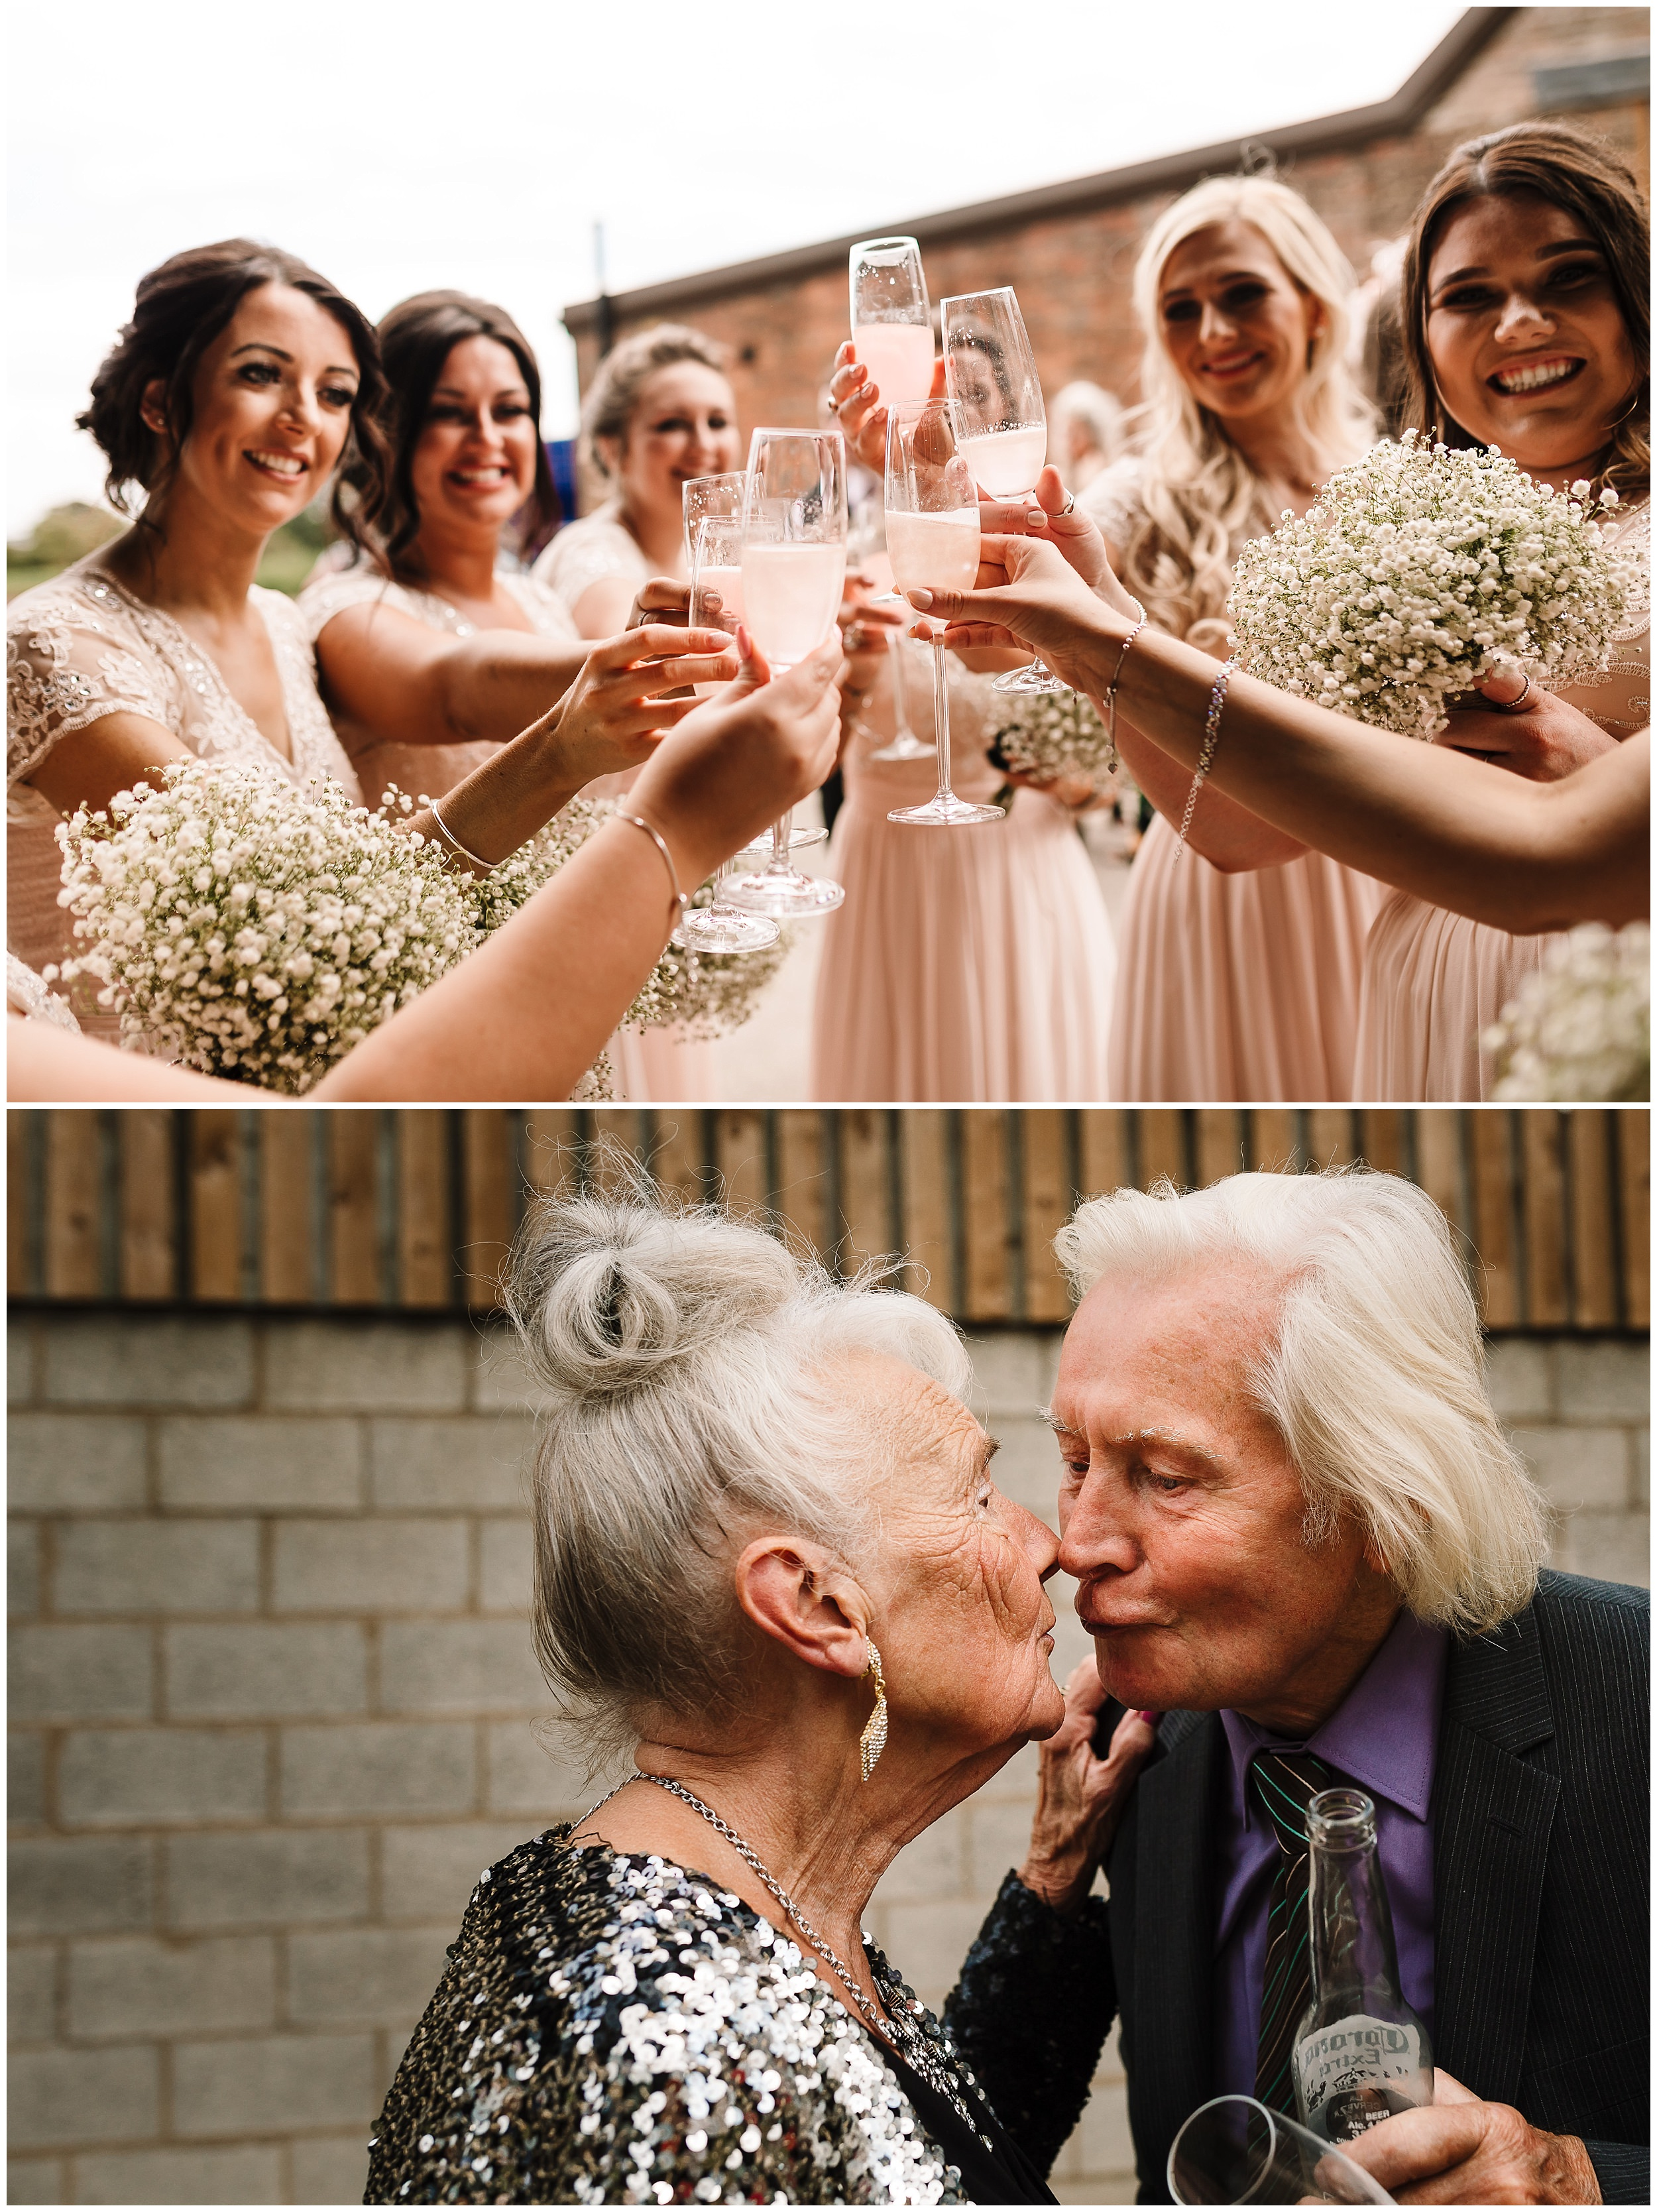 BRIDESMAIDS DRINKING CHAMPAGNE AT A WEDDING RECEPTION IN YORKSHIRE